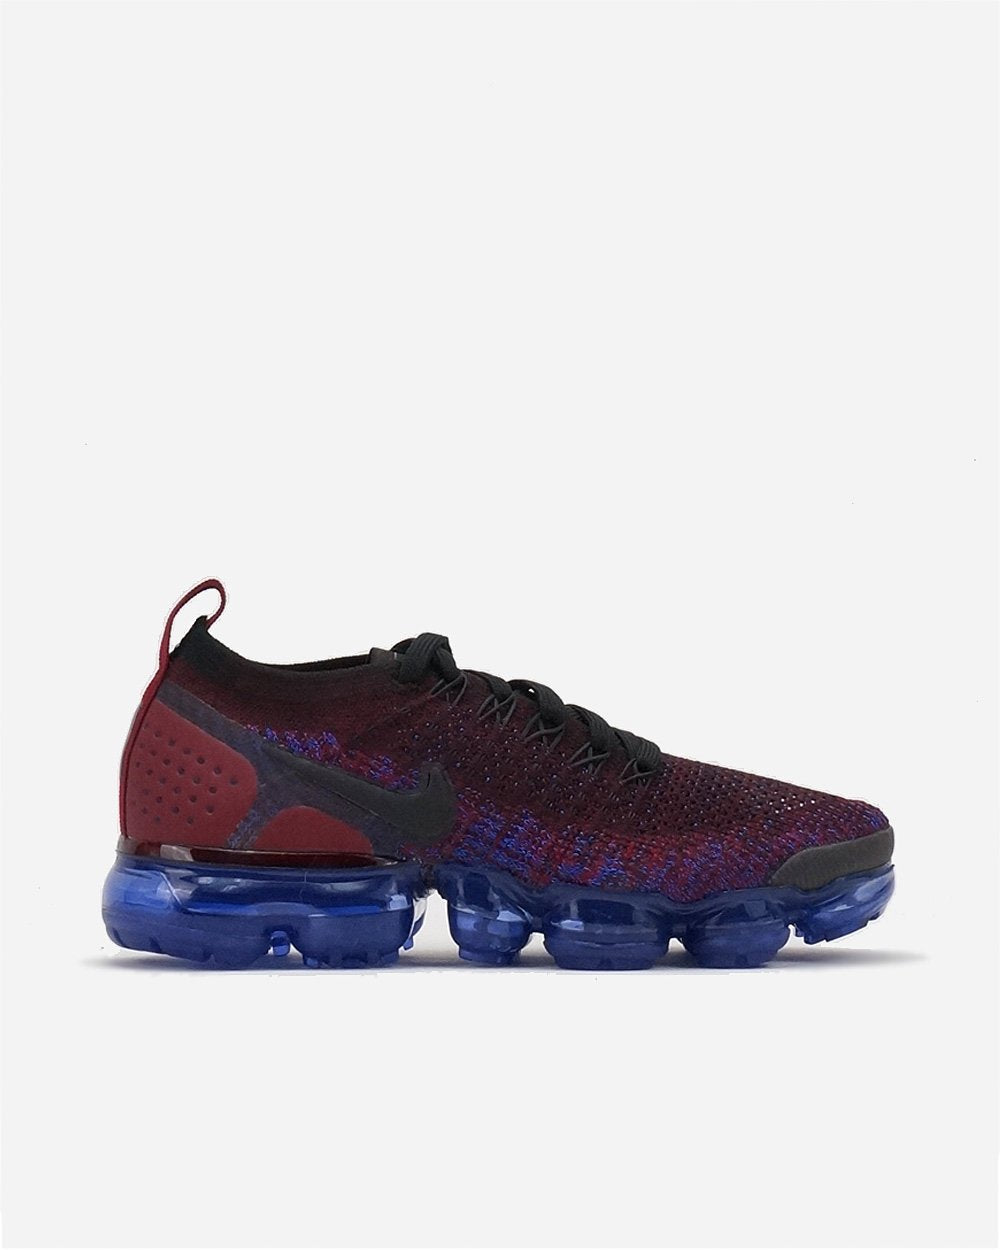 Nike Air Vapormax Flyknit 2 Black Team Red Racer Blue Womens Sneaker 942843- e650a1e17